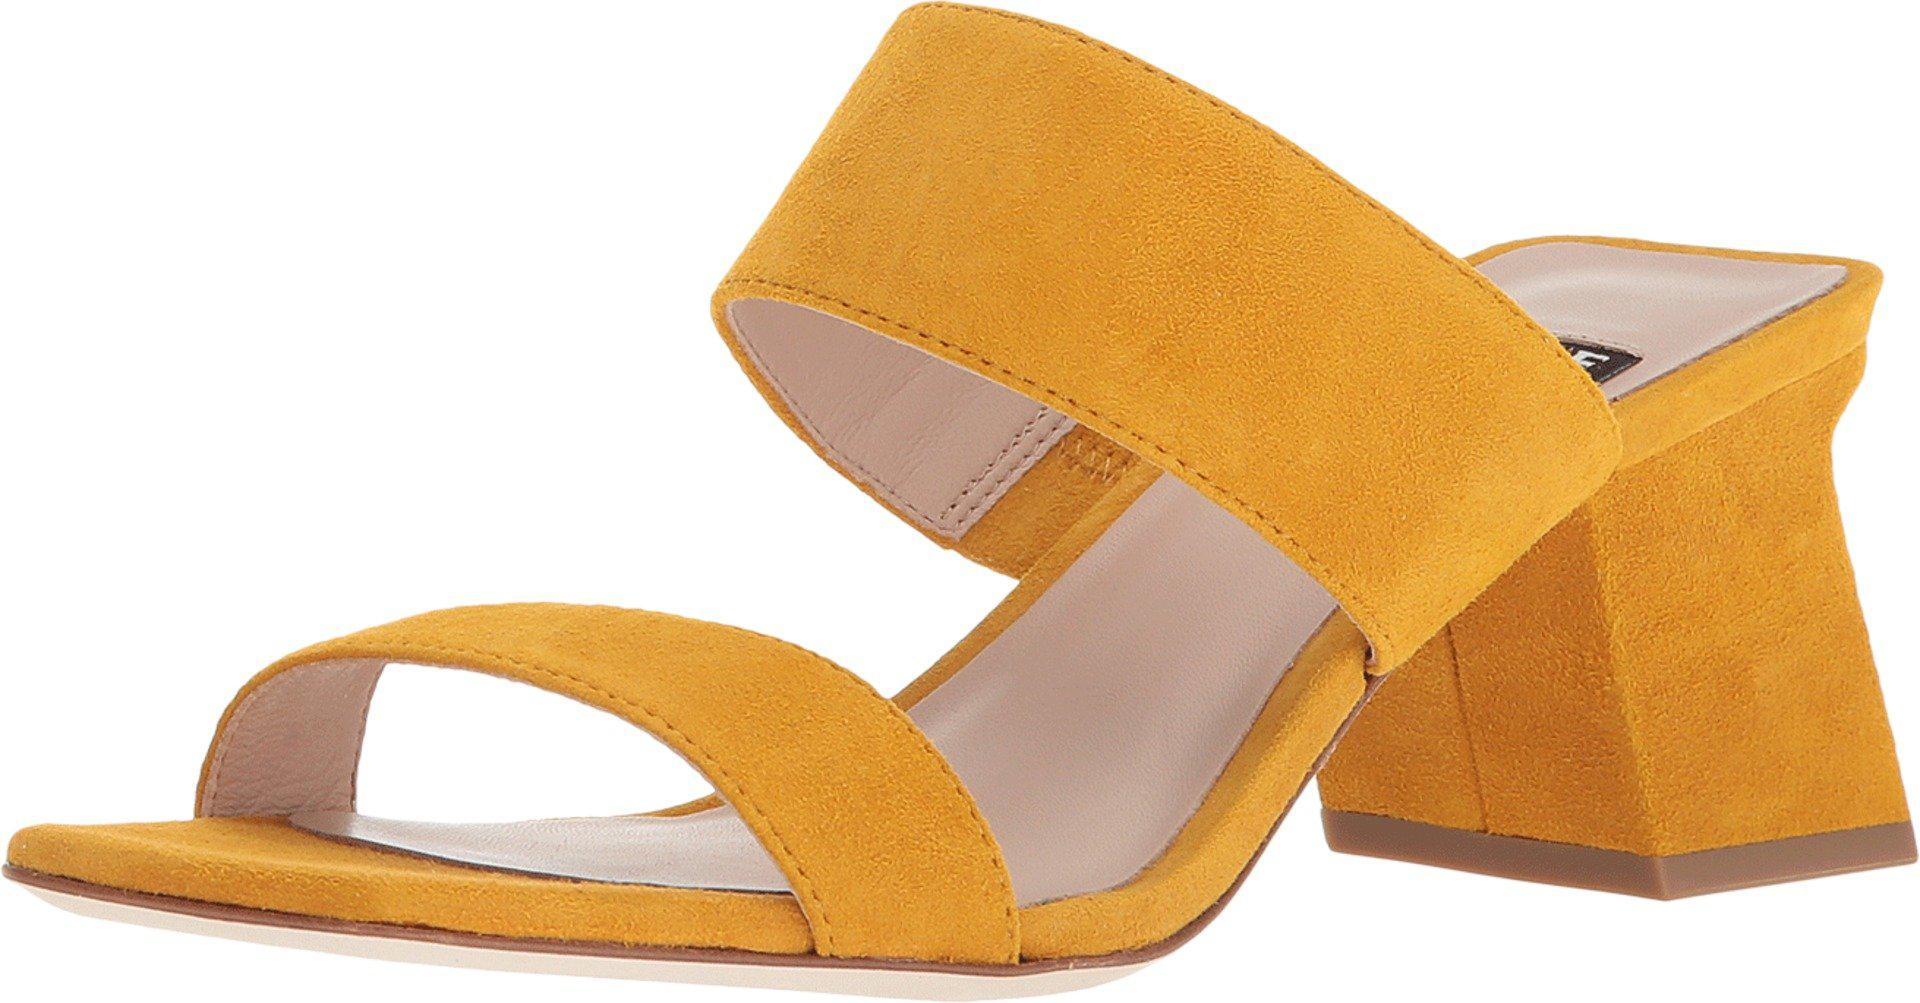 Churen 40th Anniversary Slide Sandal Nine West 8T1Ckq